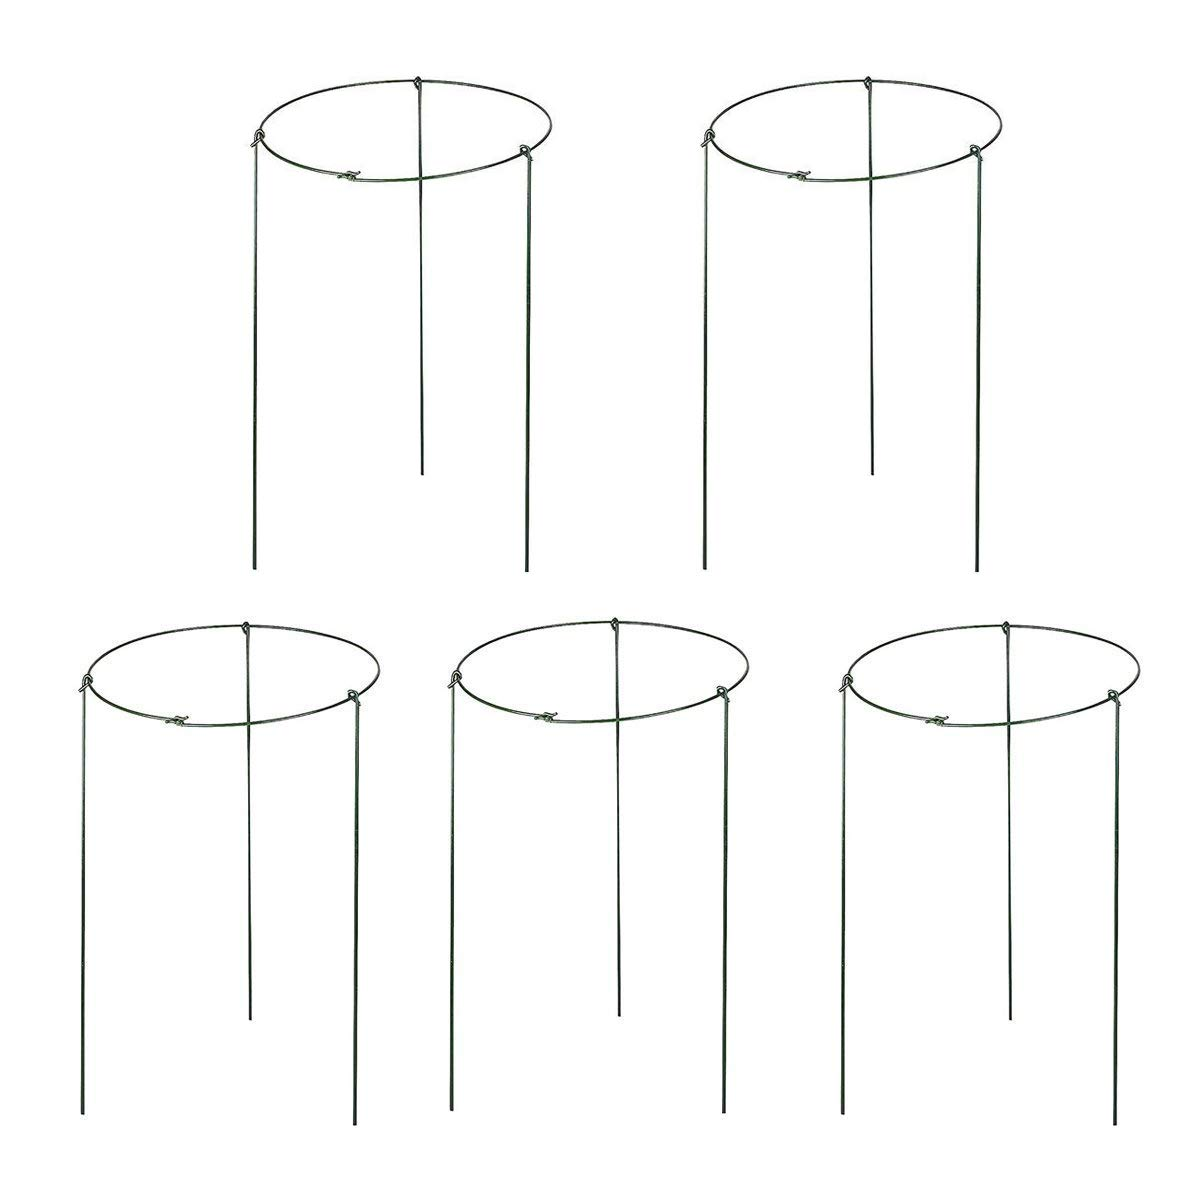 """Hanobo 5 Pack Garden Plant Support Rings for Potted Plant, 6"""" Wide x 11"""" High, 3 Legs"""